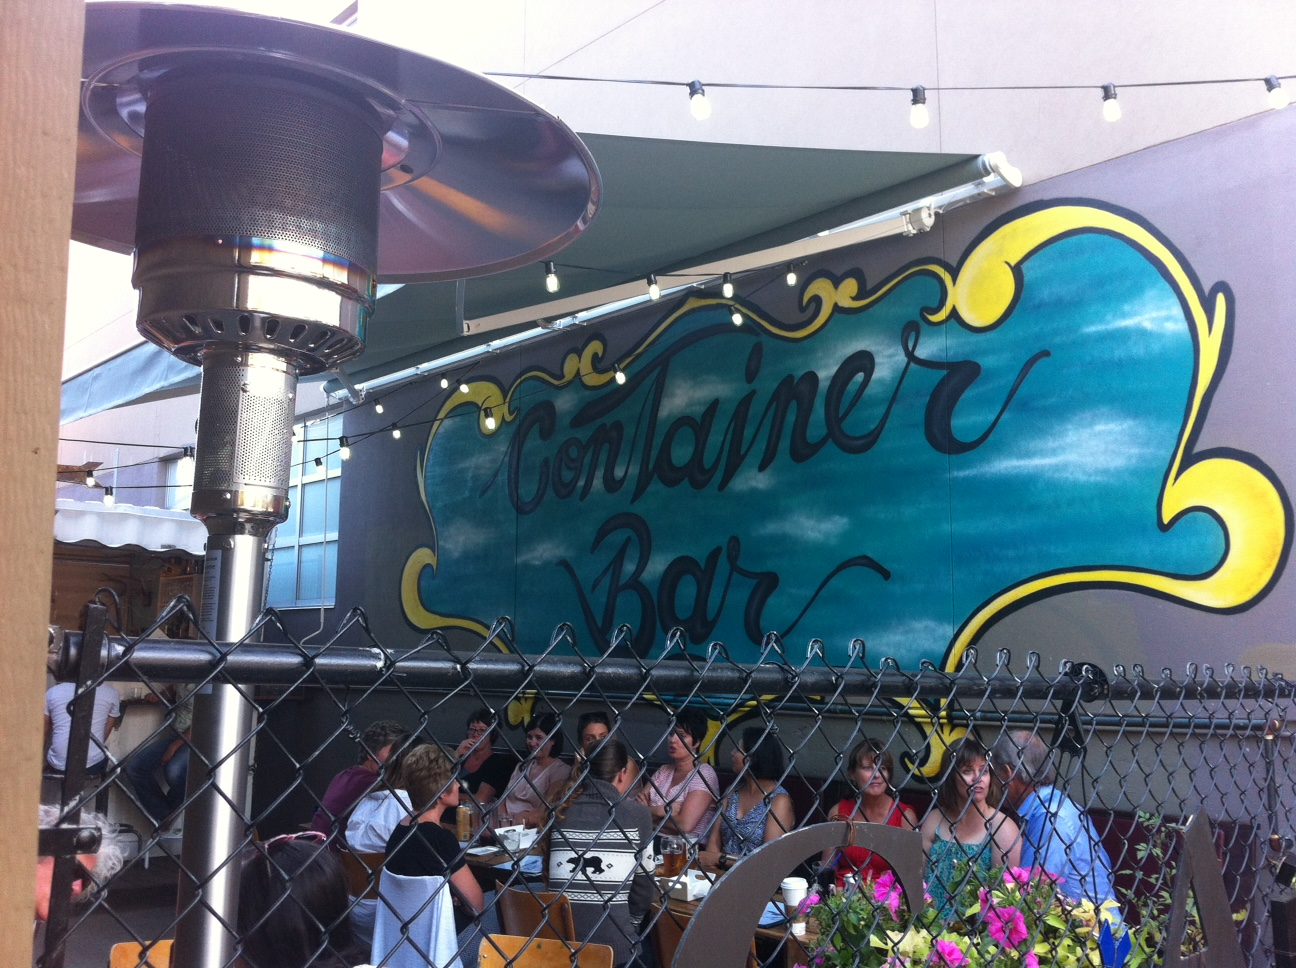 Kensington Village's Container Bar.